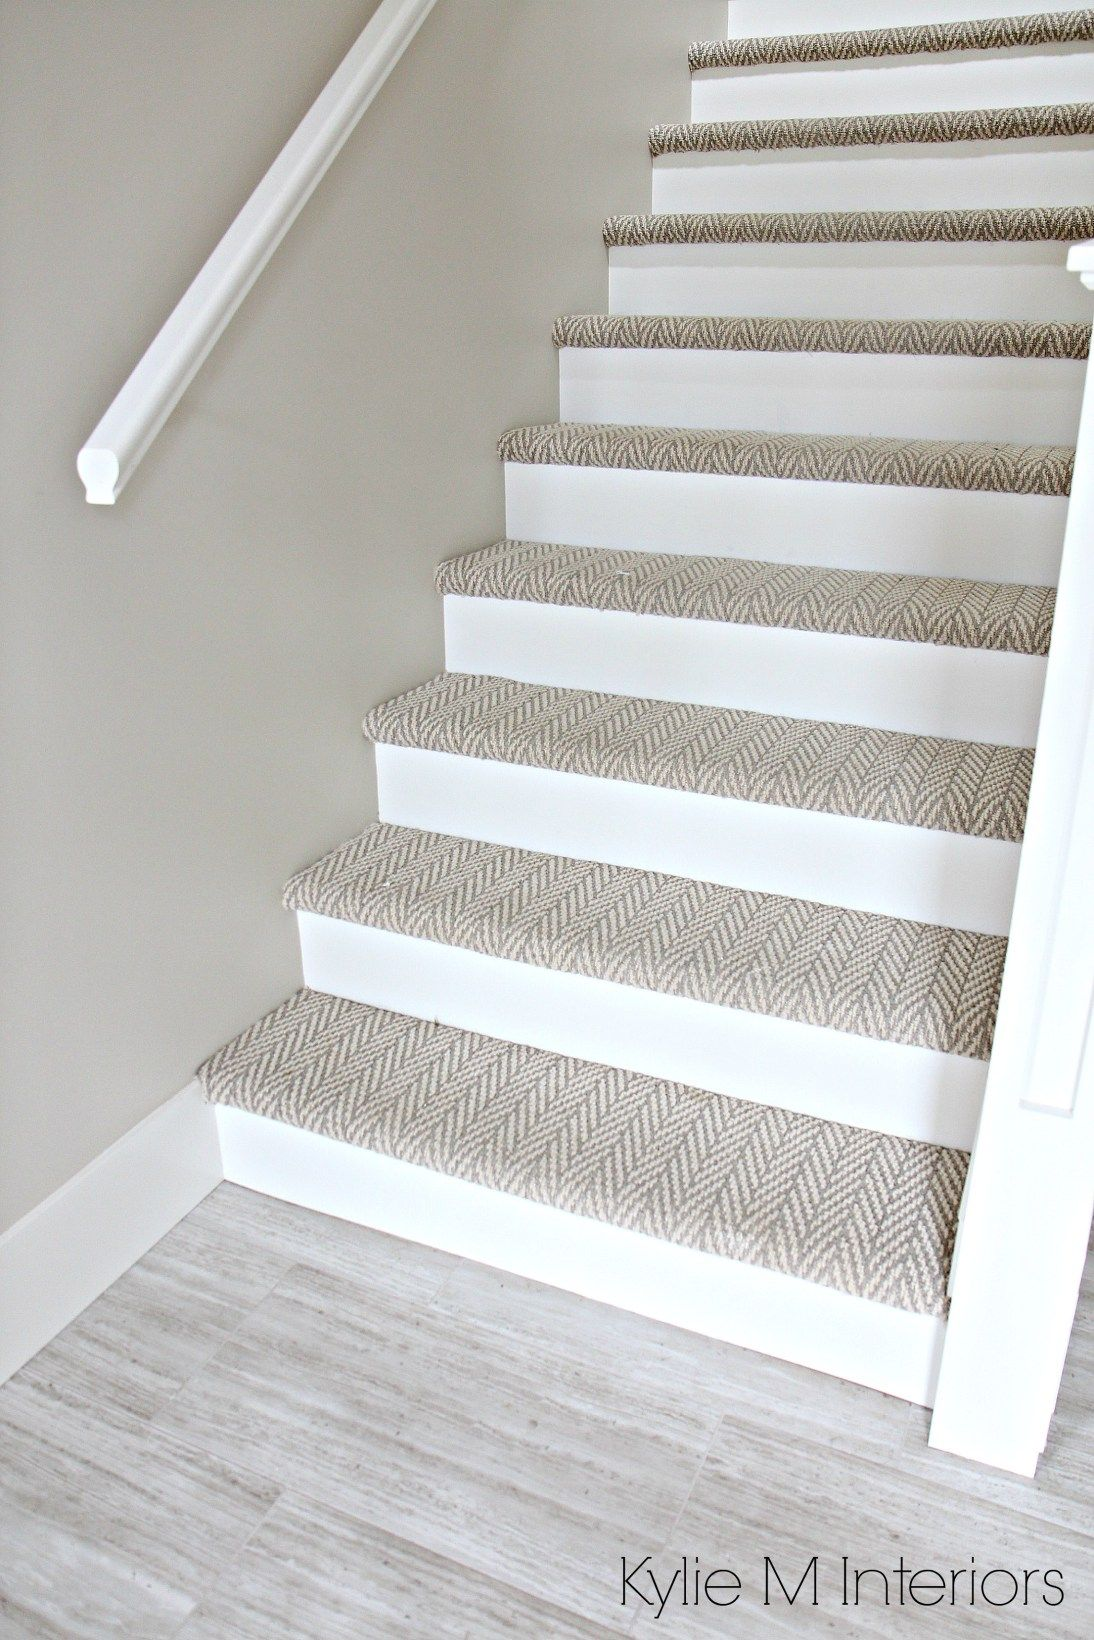 Exceptionnel Stairs With Carpet Herringbone Treads And Painted White Risers, Looks Like  A Runner. Benjamin Moore Edgecomb Gray On Stairwell Wall.